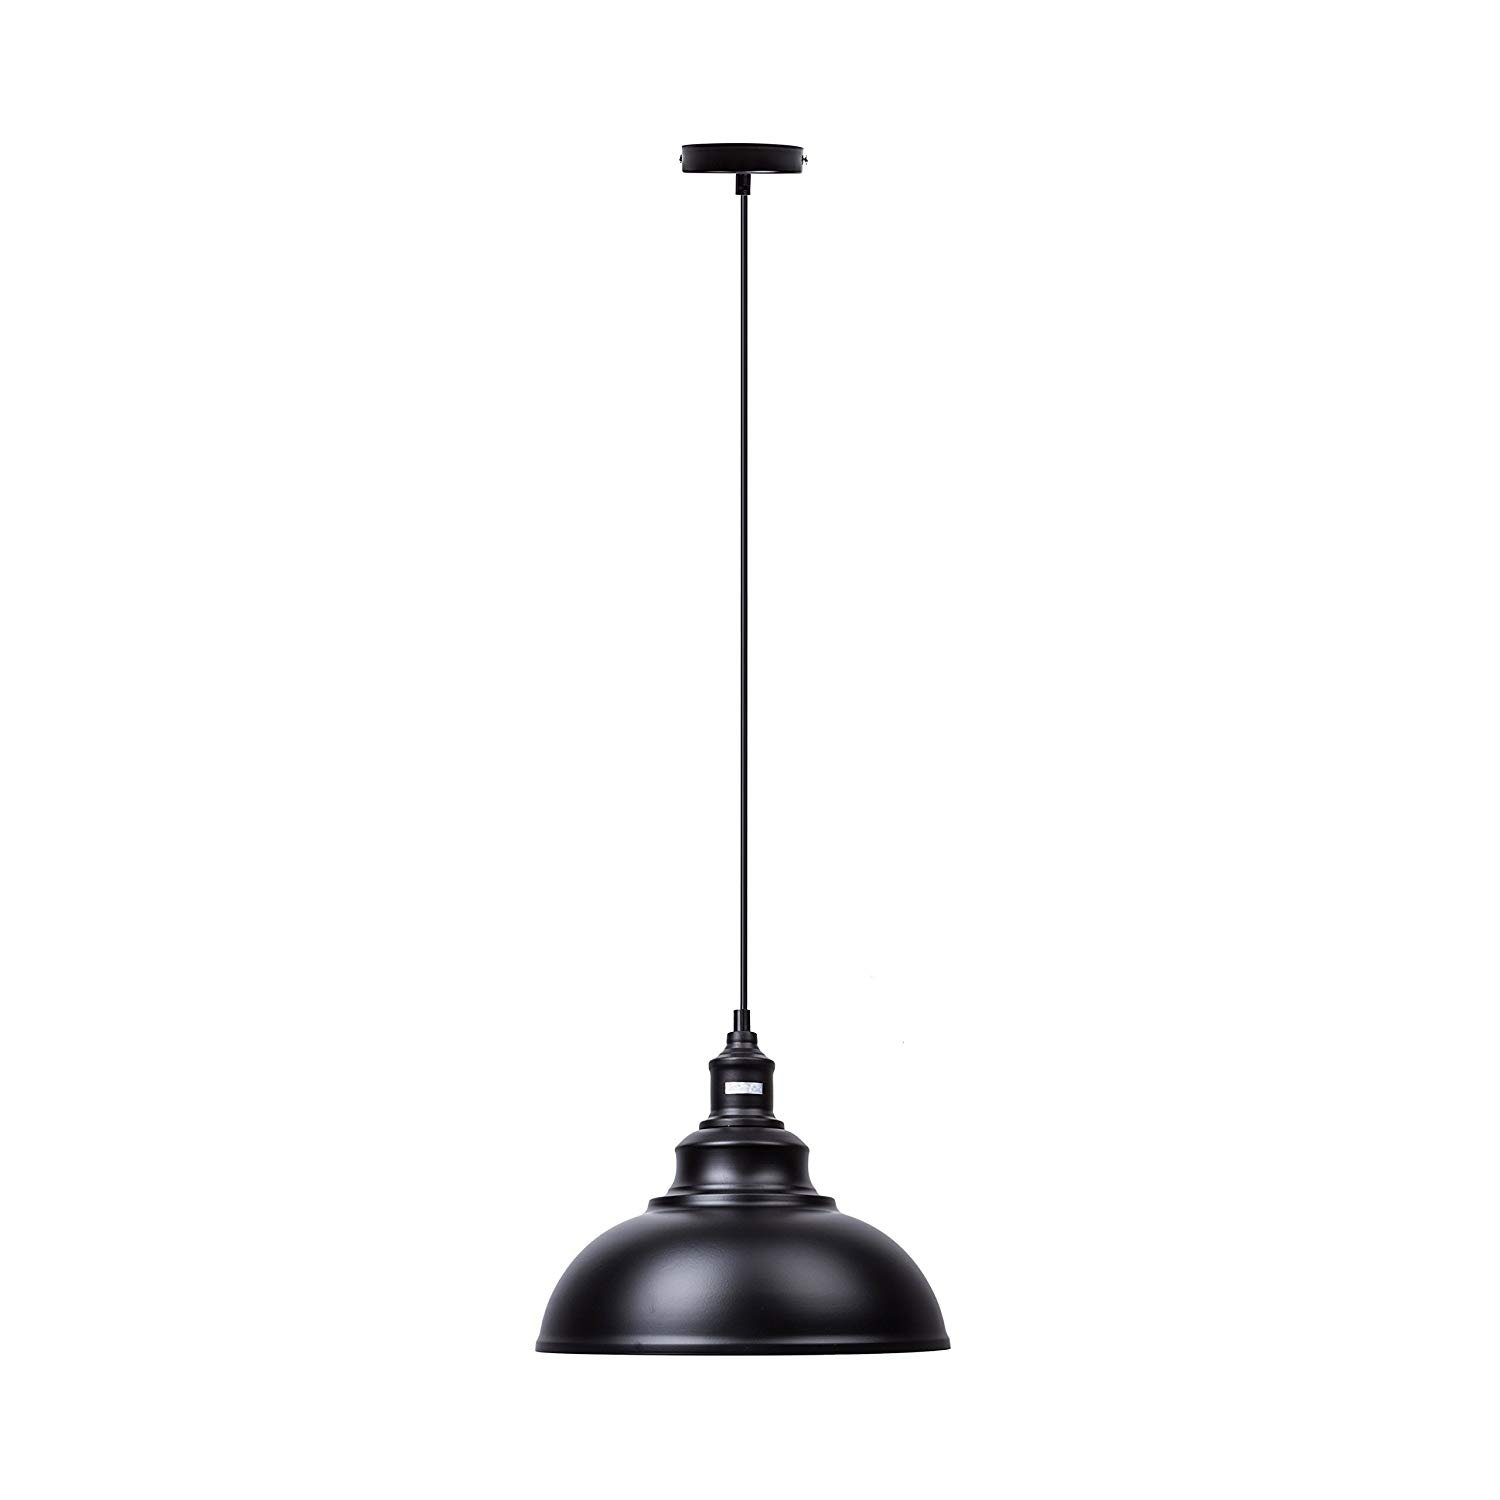 Industrial Pendant Light Vintage Black Hanging Lights Metal Edison Ceiling Mount Fixture Lighting